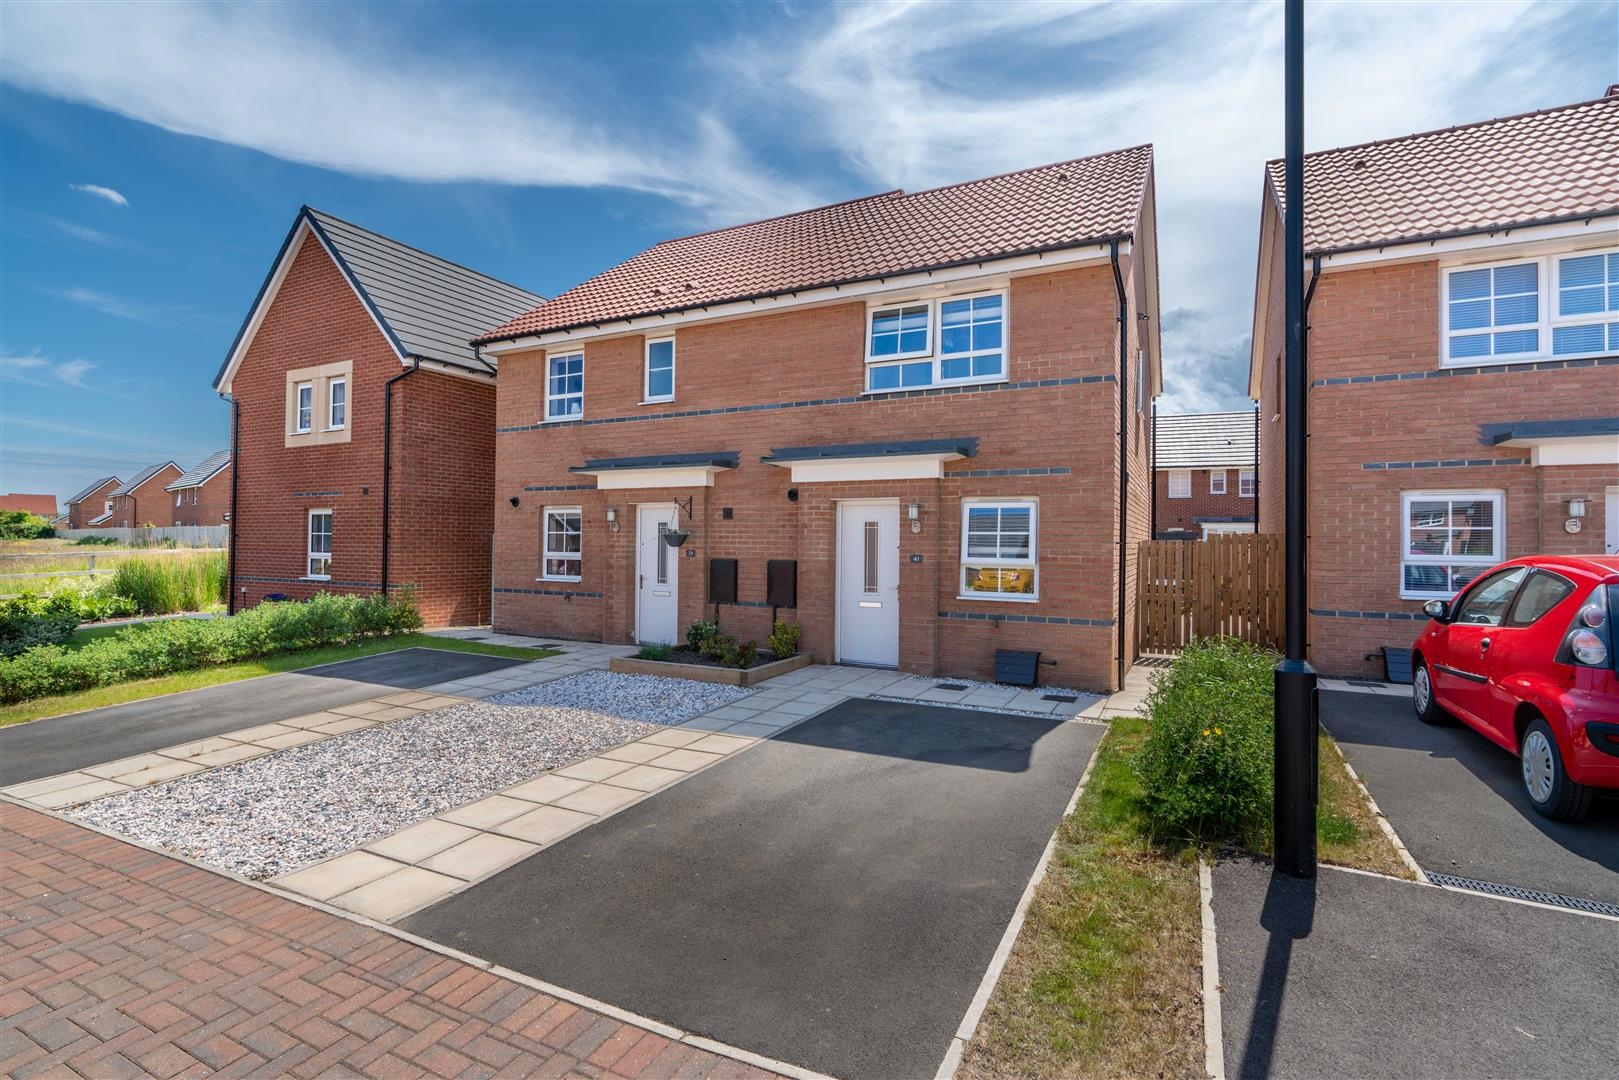 2 bed semi-detached house for sale in Cheltenham Close, Newcastle Upon Tyne, NE13